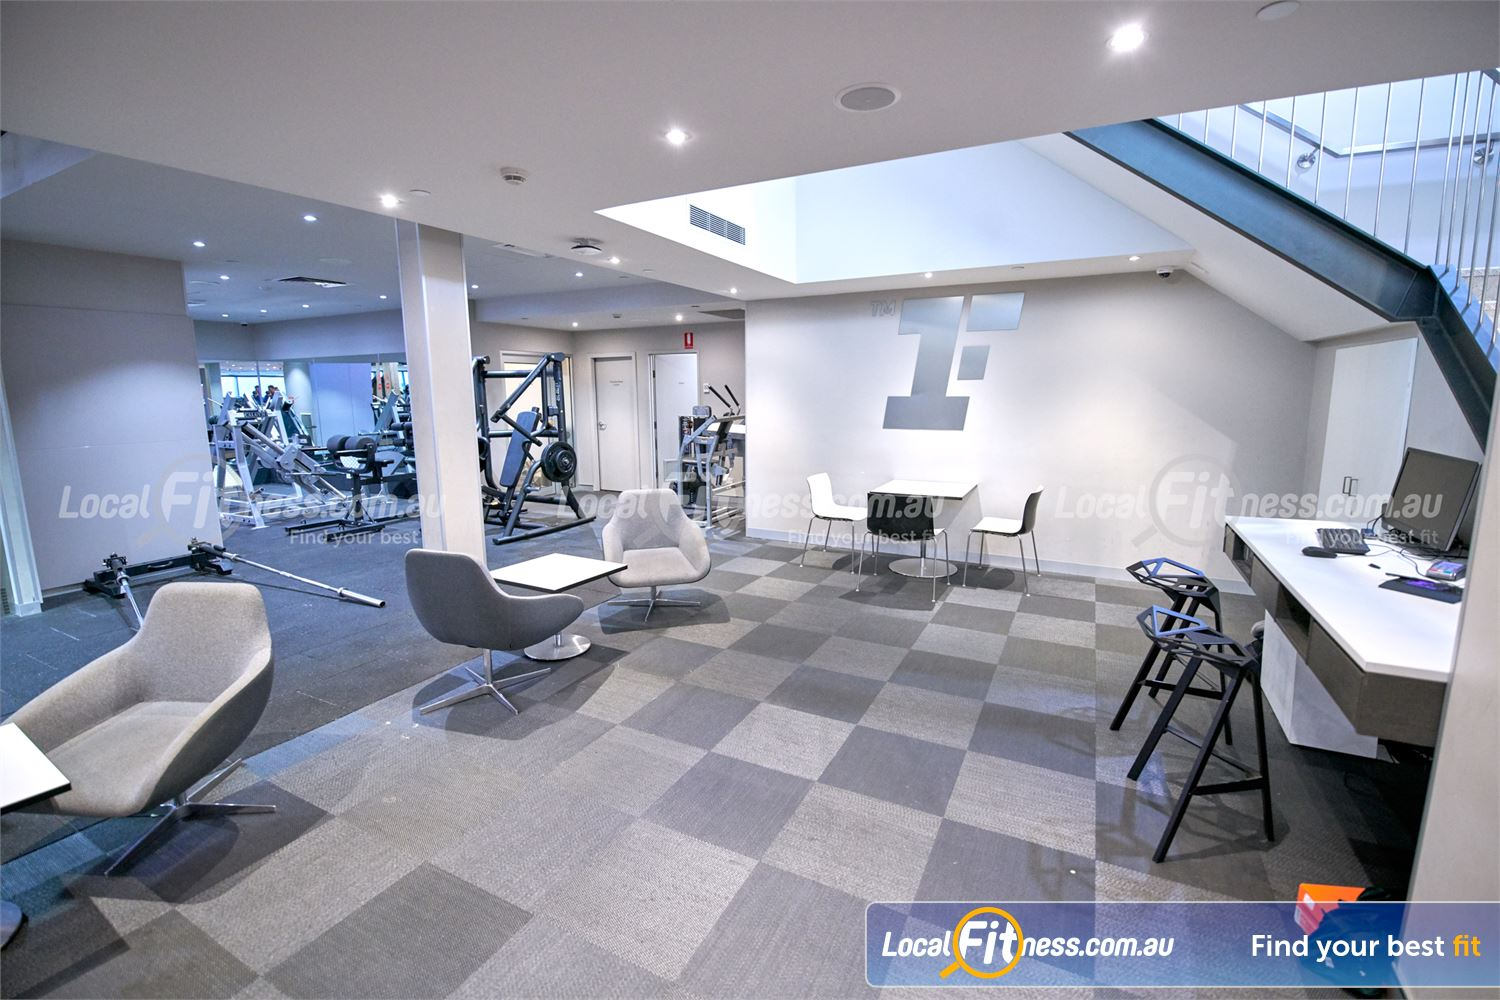 Fitness First Victoria Gardens Near South Yarra The comfortable members lounge area at Fitness First Victoria Gardens.